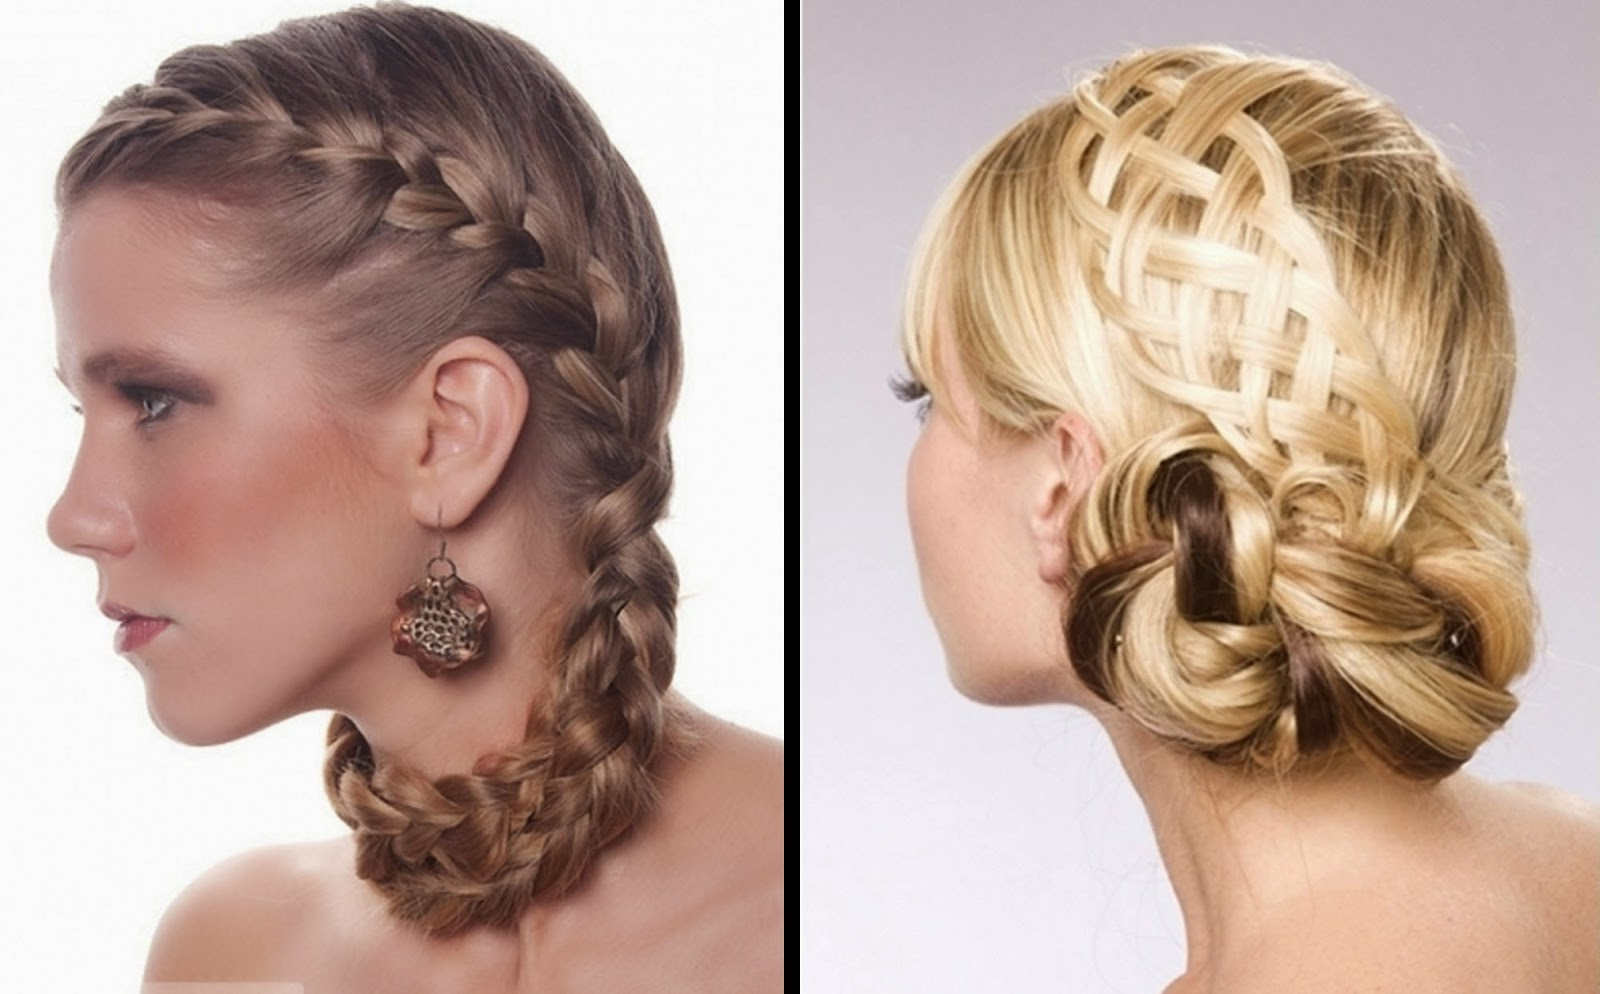 100 Delightful Prom Hairstyles Ideas Haircuts  Design Trends  Premium PSD Vector Downloads